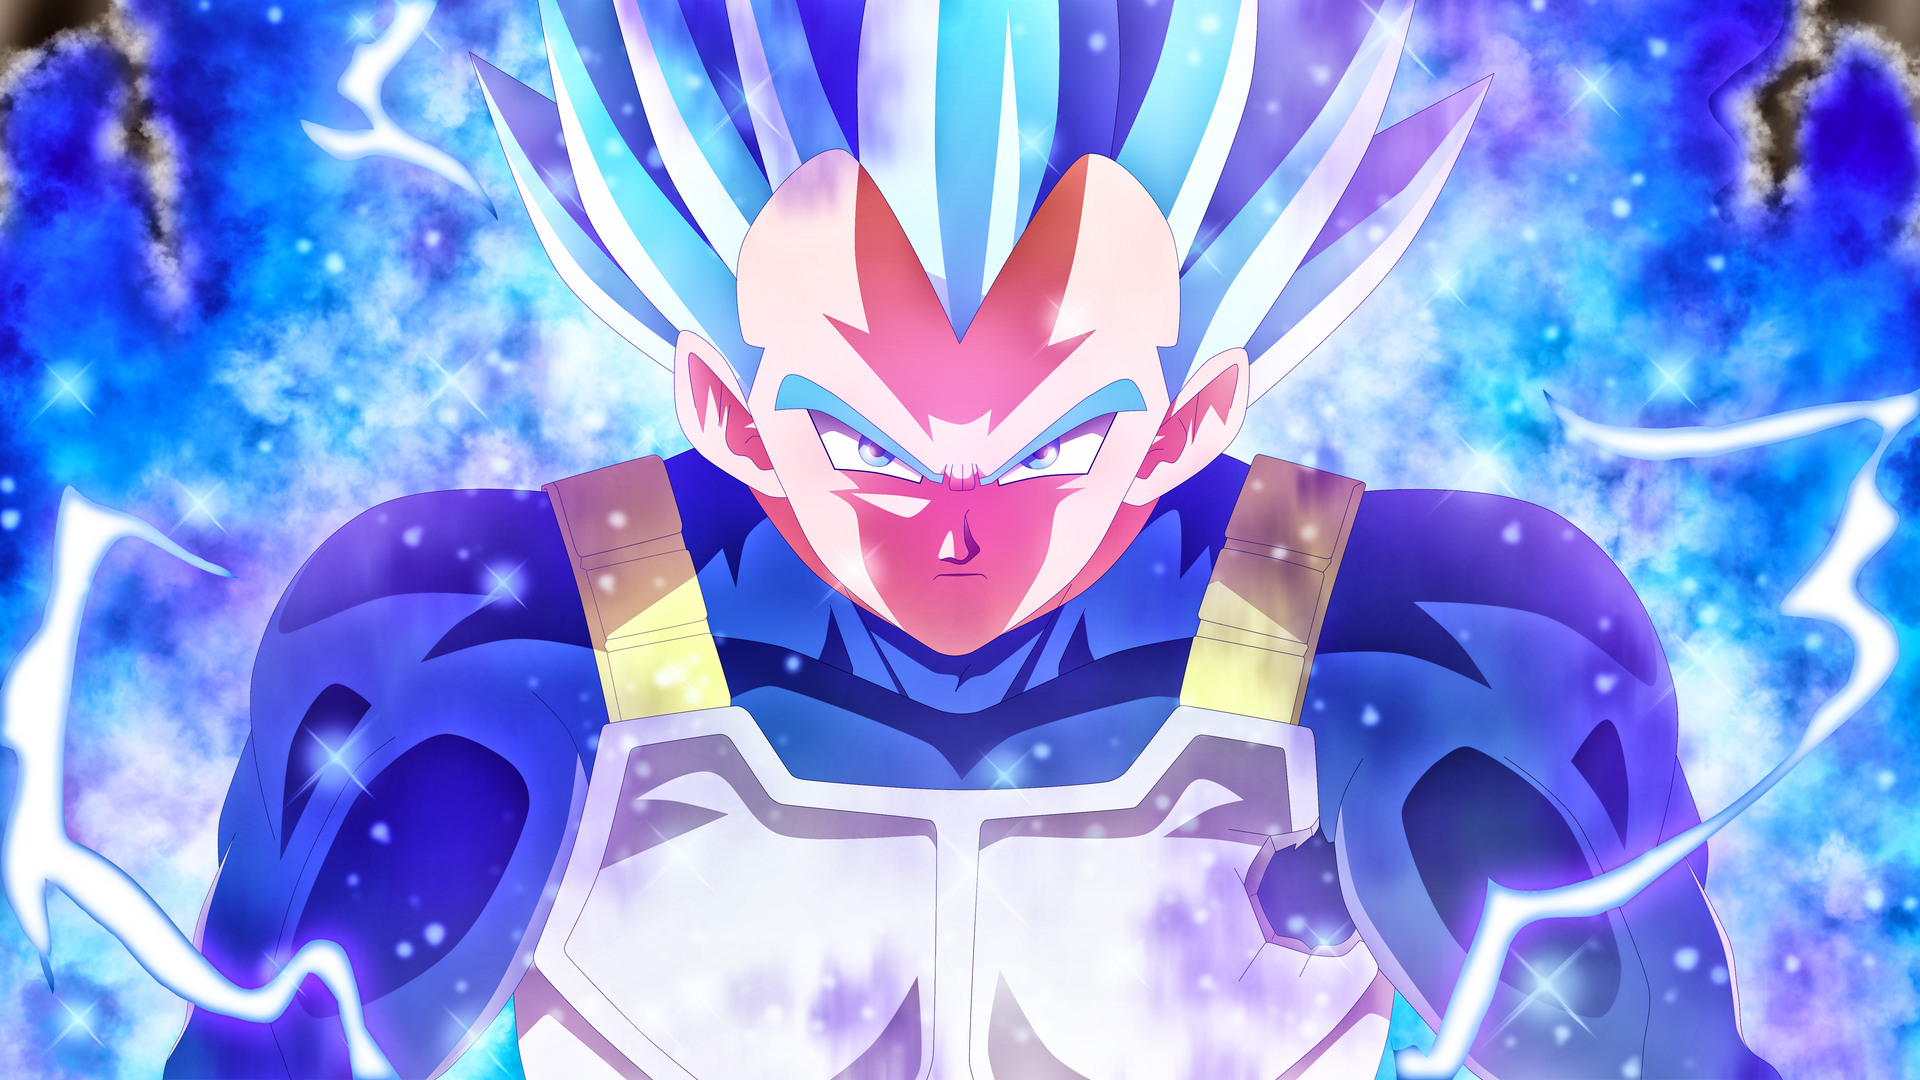 1920x1080 vegeta blue 5k anime laptop full hd 1080p hd 4k wallpapers